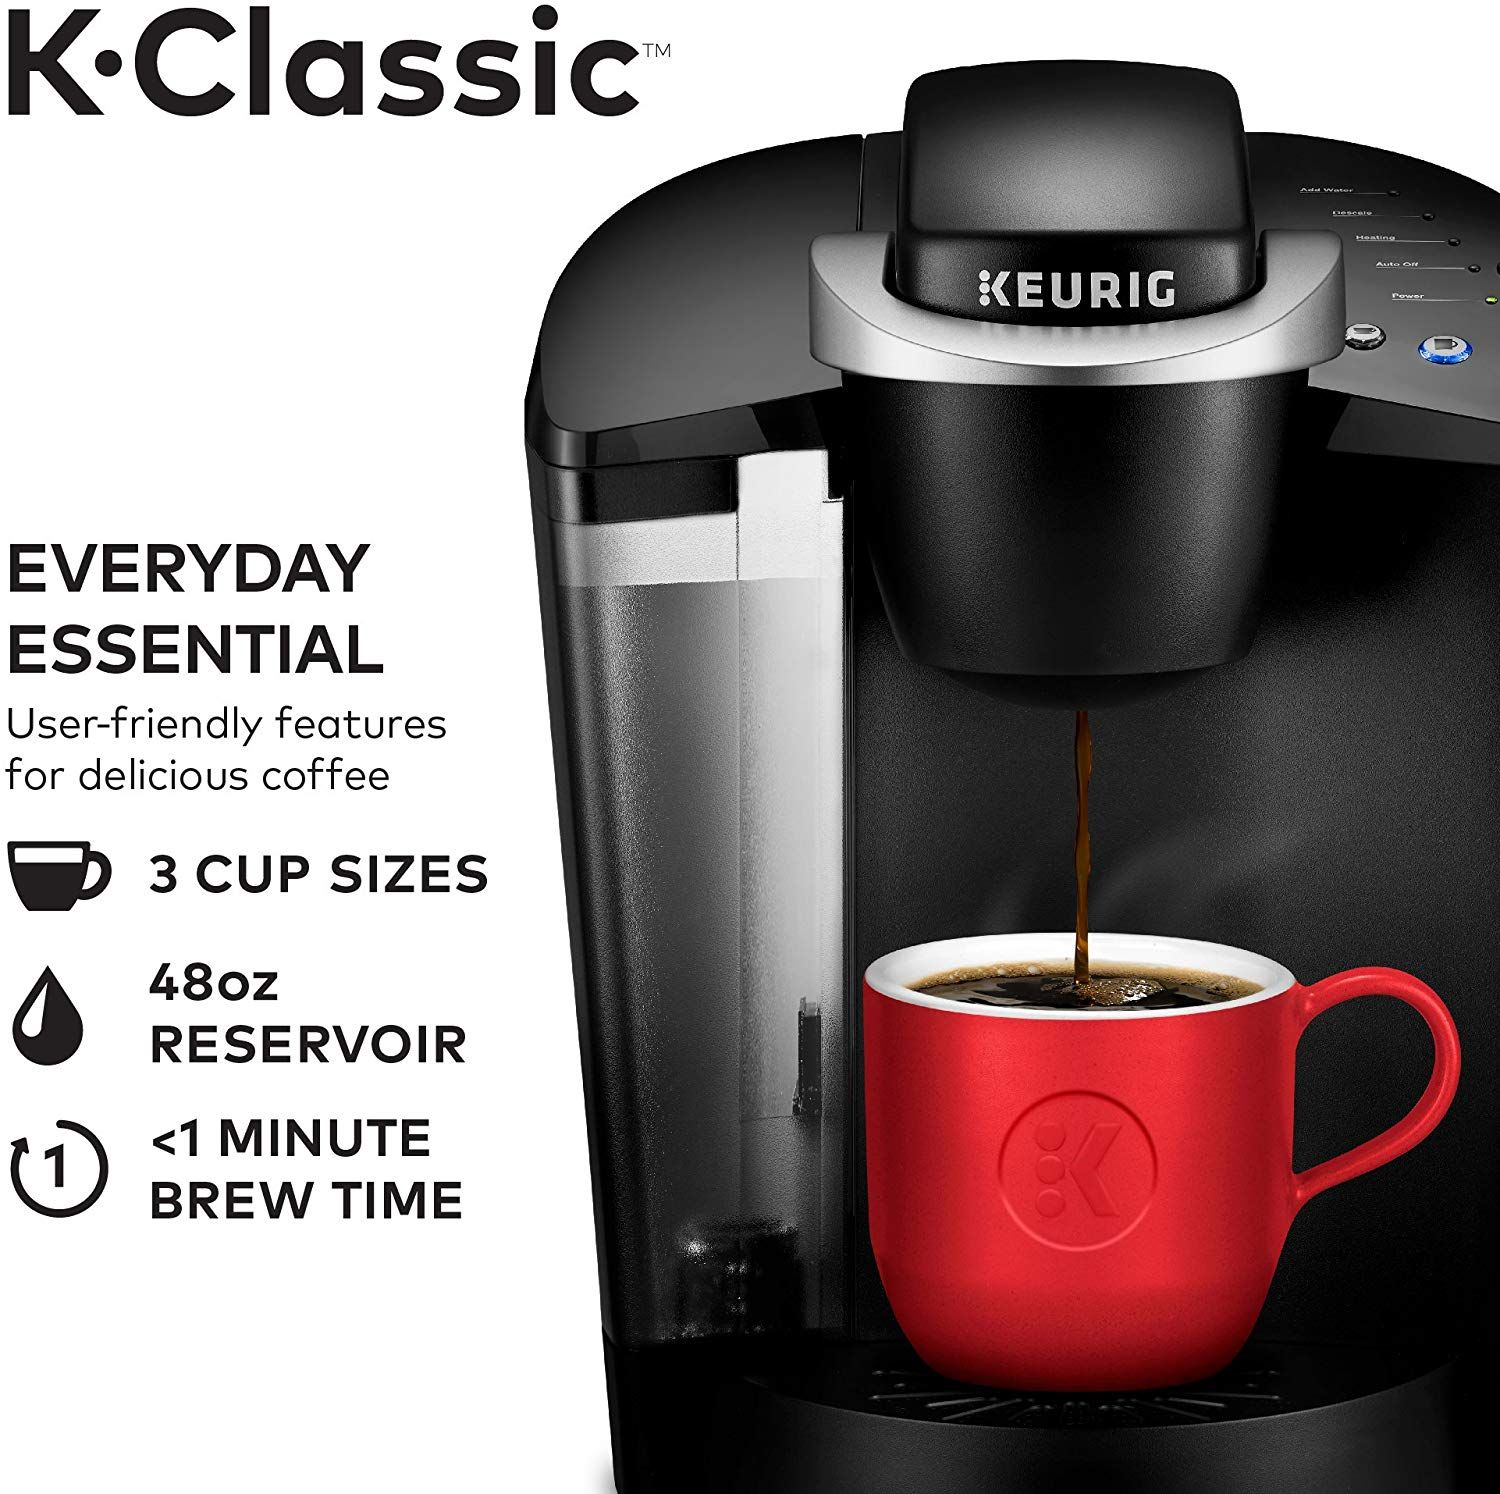 Keurig K Classic Coffee Maker Single Serve K Cup Pod Coffee Brewer 6 To 10 Oz Brew Sizes Classic Coffee Maker Keurig Coffee Makers Single Cup Coffee Maker